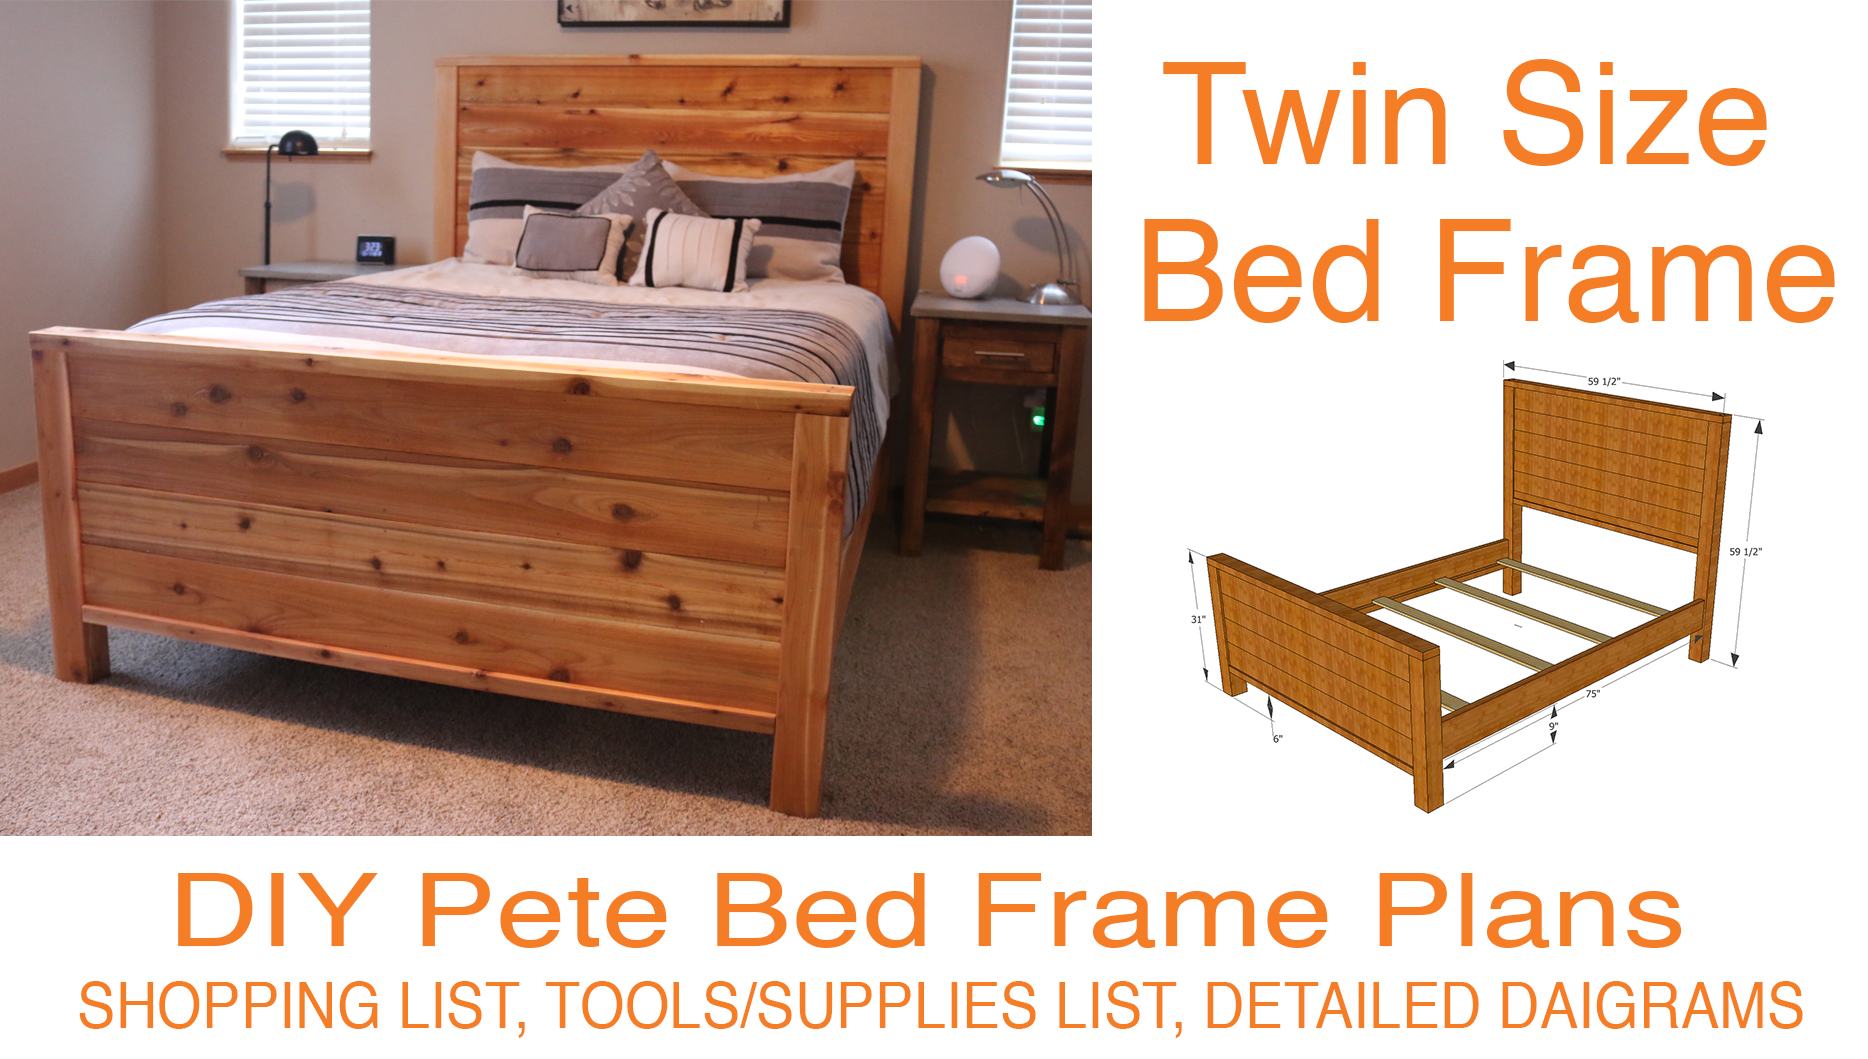 Cheap Wooden Bed Frames Diy Bed Frame Plans How To Make A Bed Frame With Diy Pete